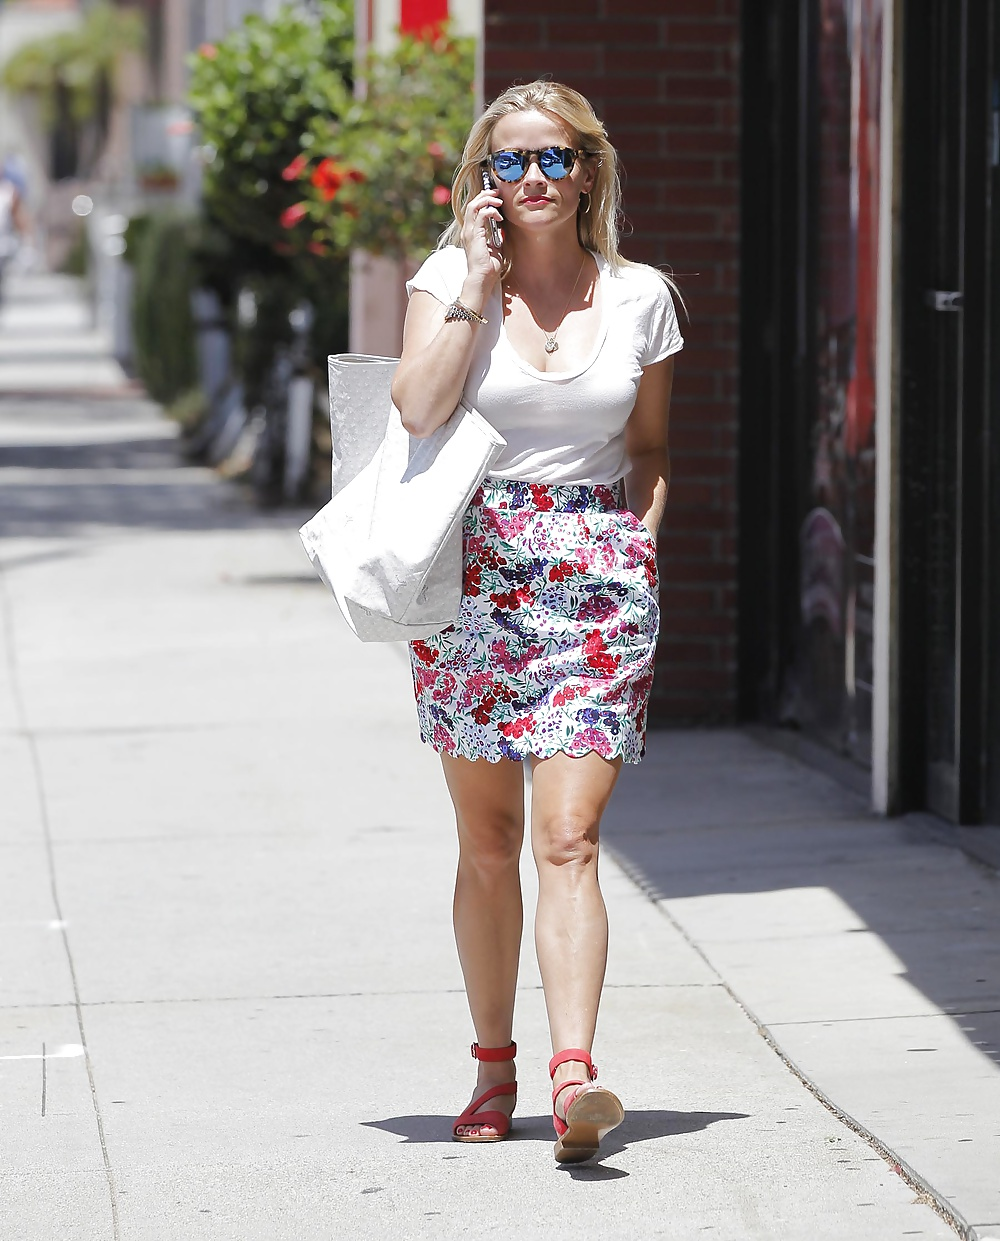 reese witherspoon upskirt